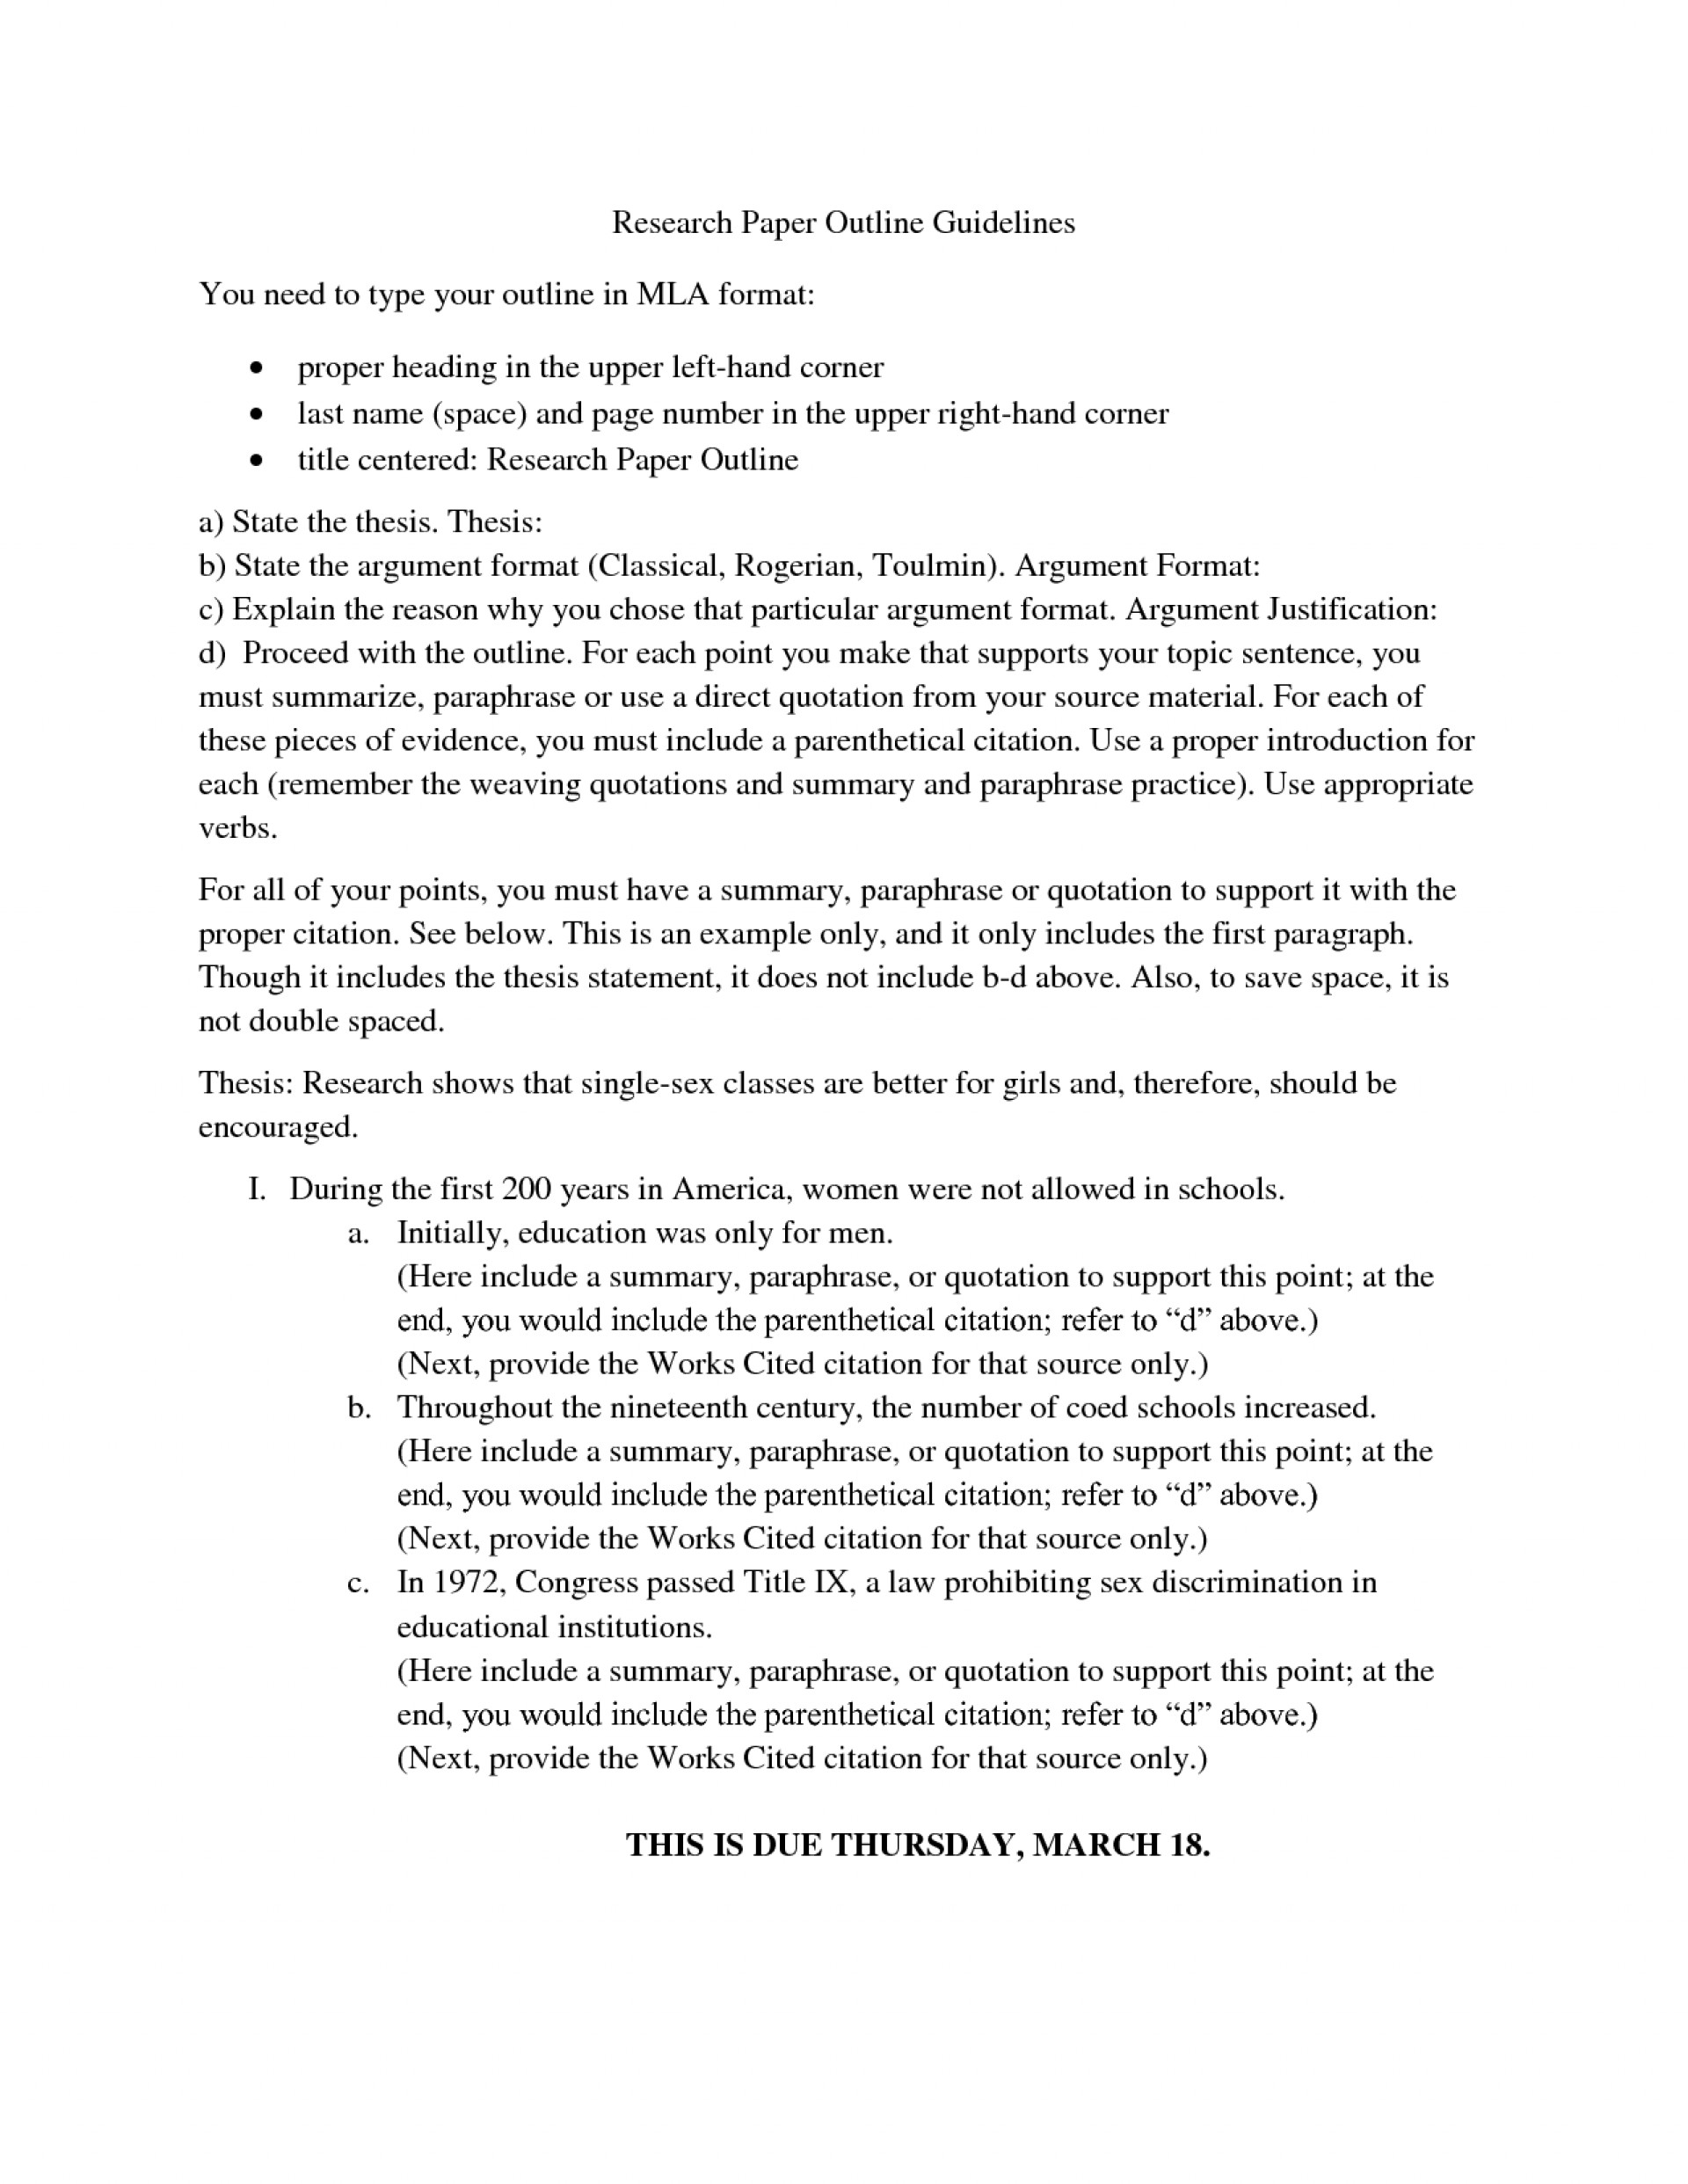 019 Proper Mla Research Paper 472292 Example Outstanding Outline Of A Format Writing Style 1920